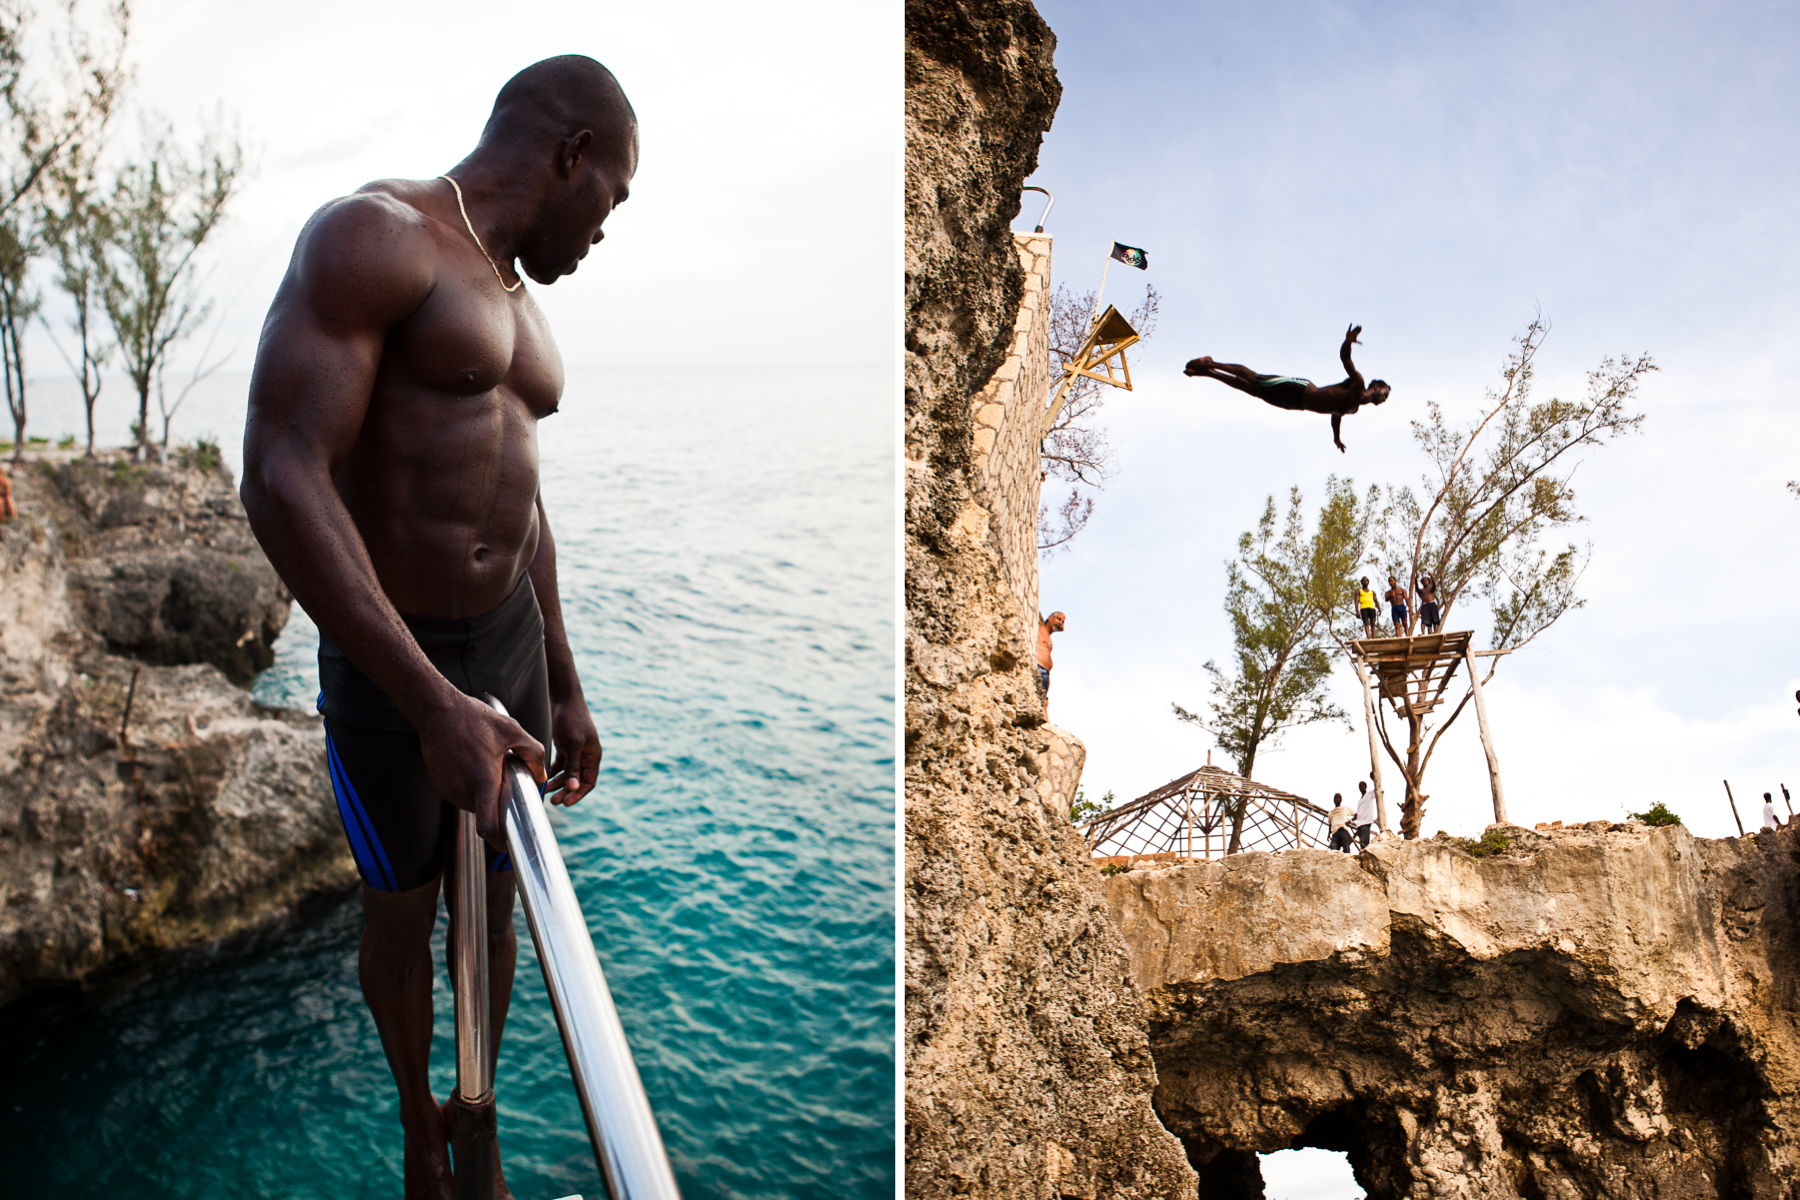 Cliff Diver in Negril, Jamaica